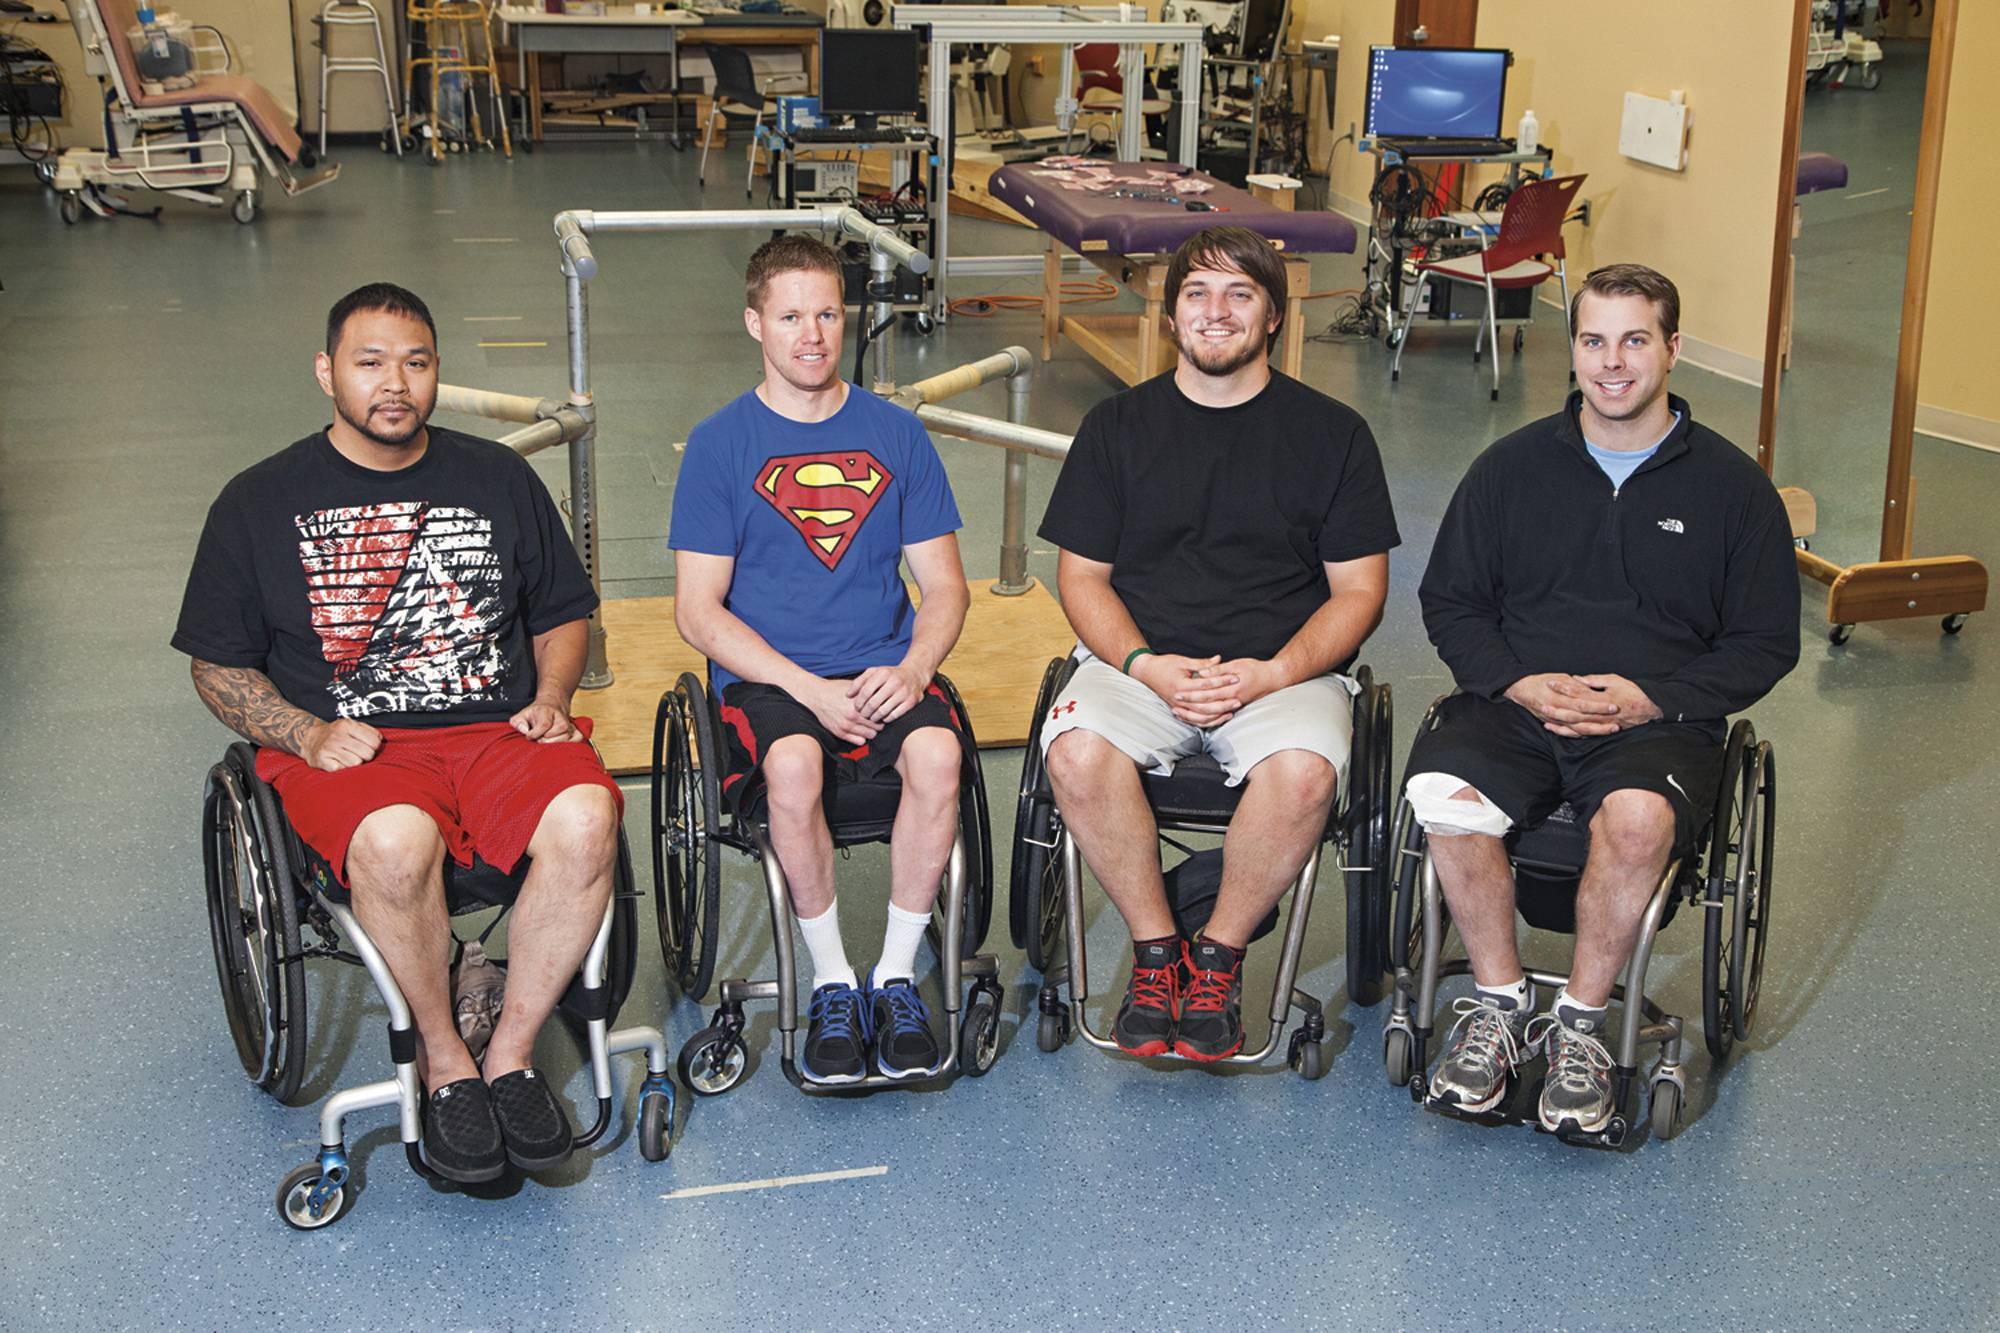 Andrew Meas, Dustin Shillcox, Kent Stephenson and Rob Summers, the first four to undergo task-specific training with epidural stimulation at the Human Locomotion Research Center laboratory, Frazier Rehab Institute, as part of the University of Louisville's Kentucky Spinal Cord Injury Research Center.